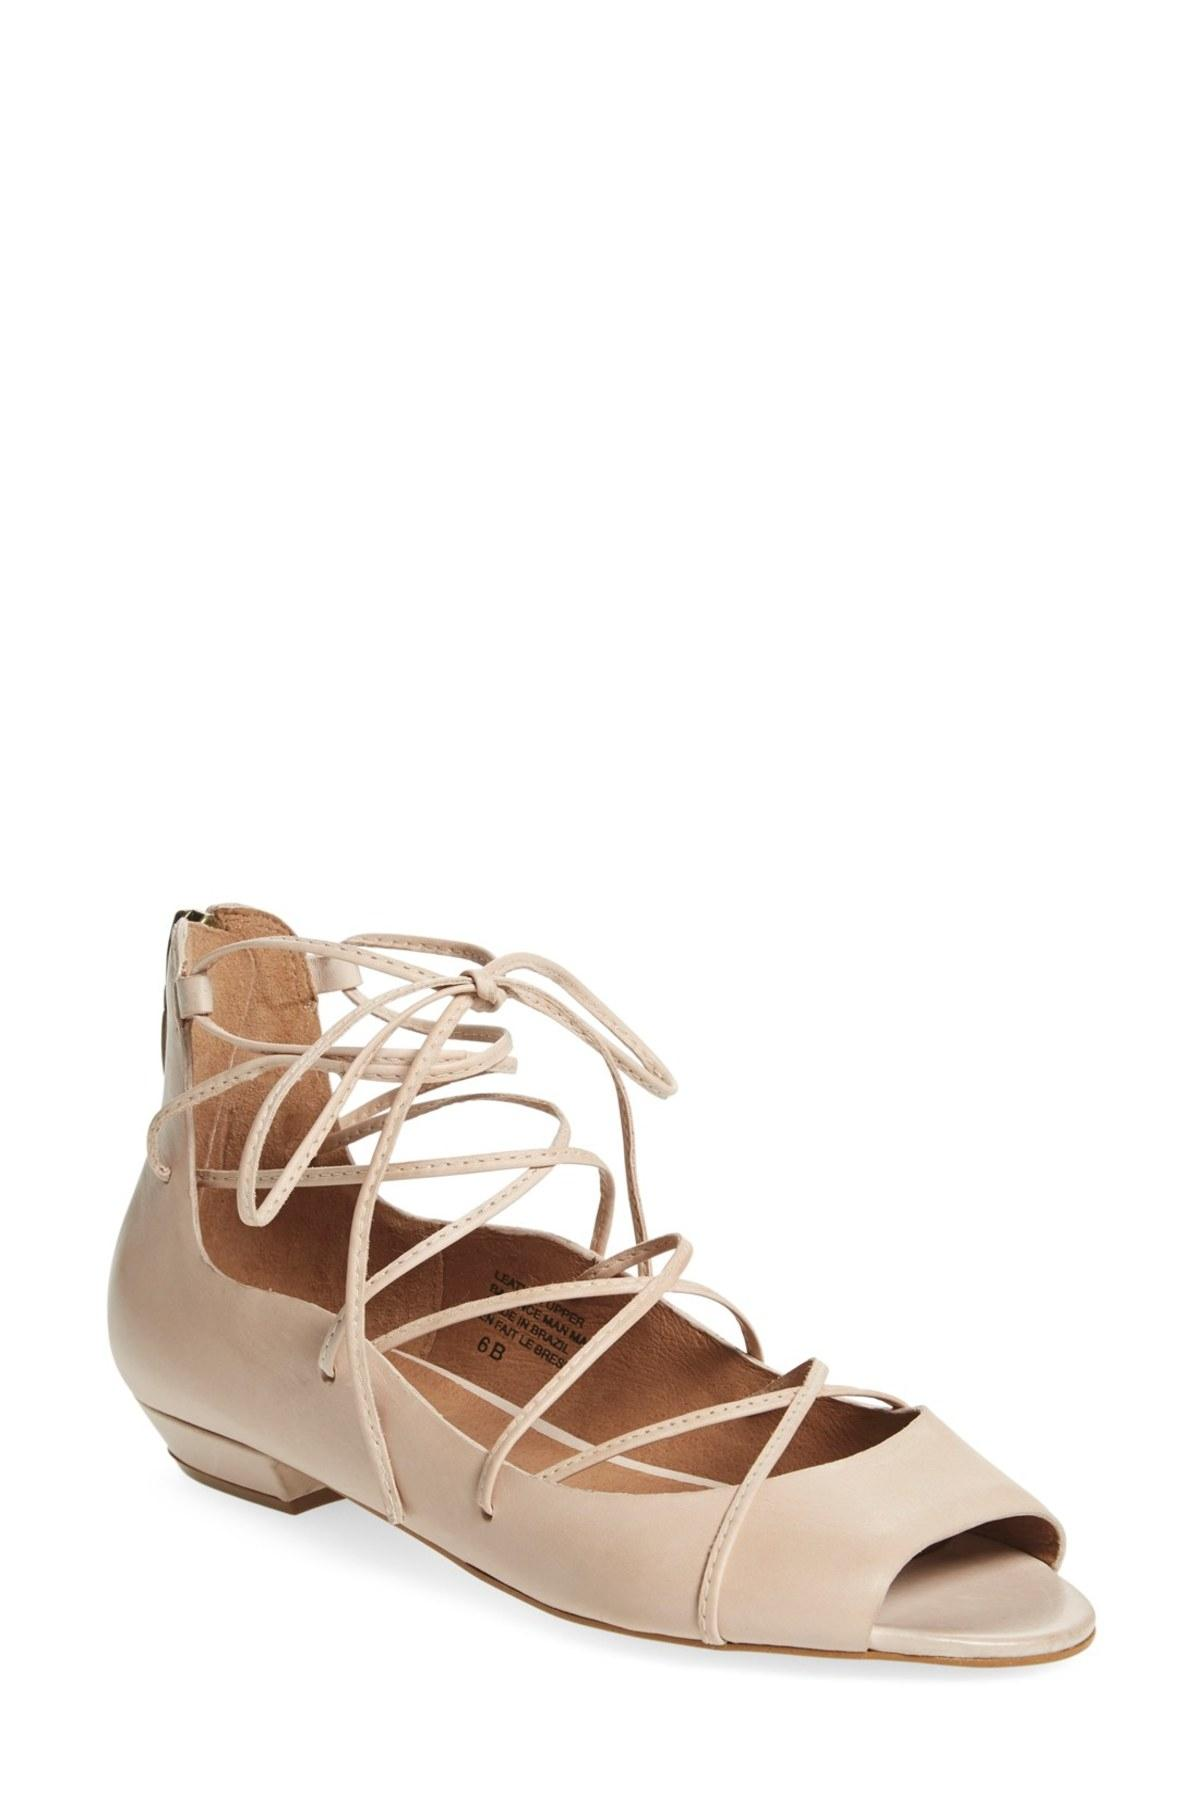 Seychelles Nude Leather Collection Enamour Open Toe Ghillie Flats Flats Ghillie Size US 8.5 Regular (M, B) 0af644